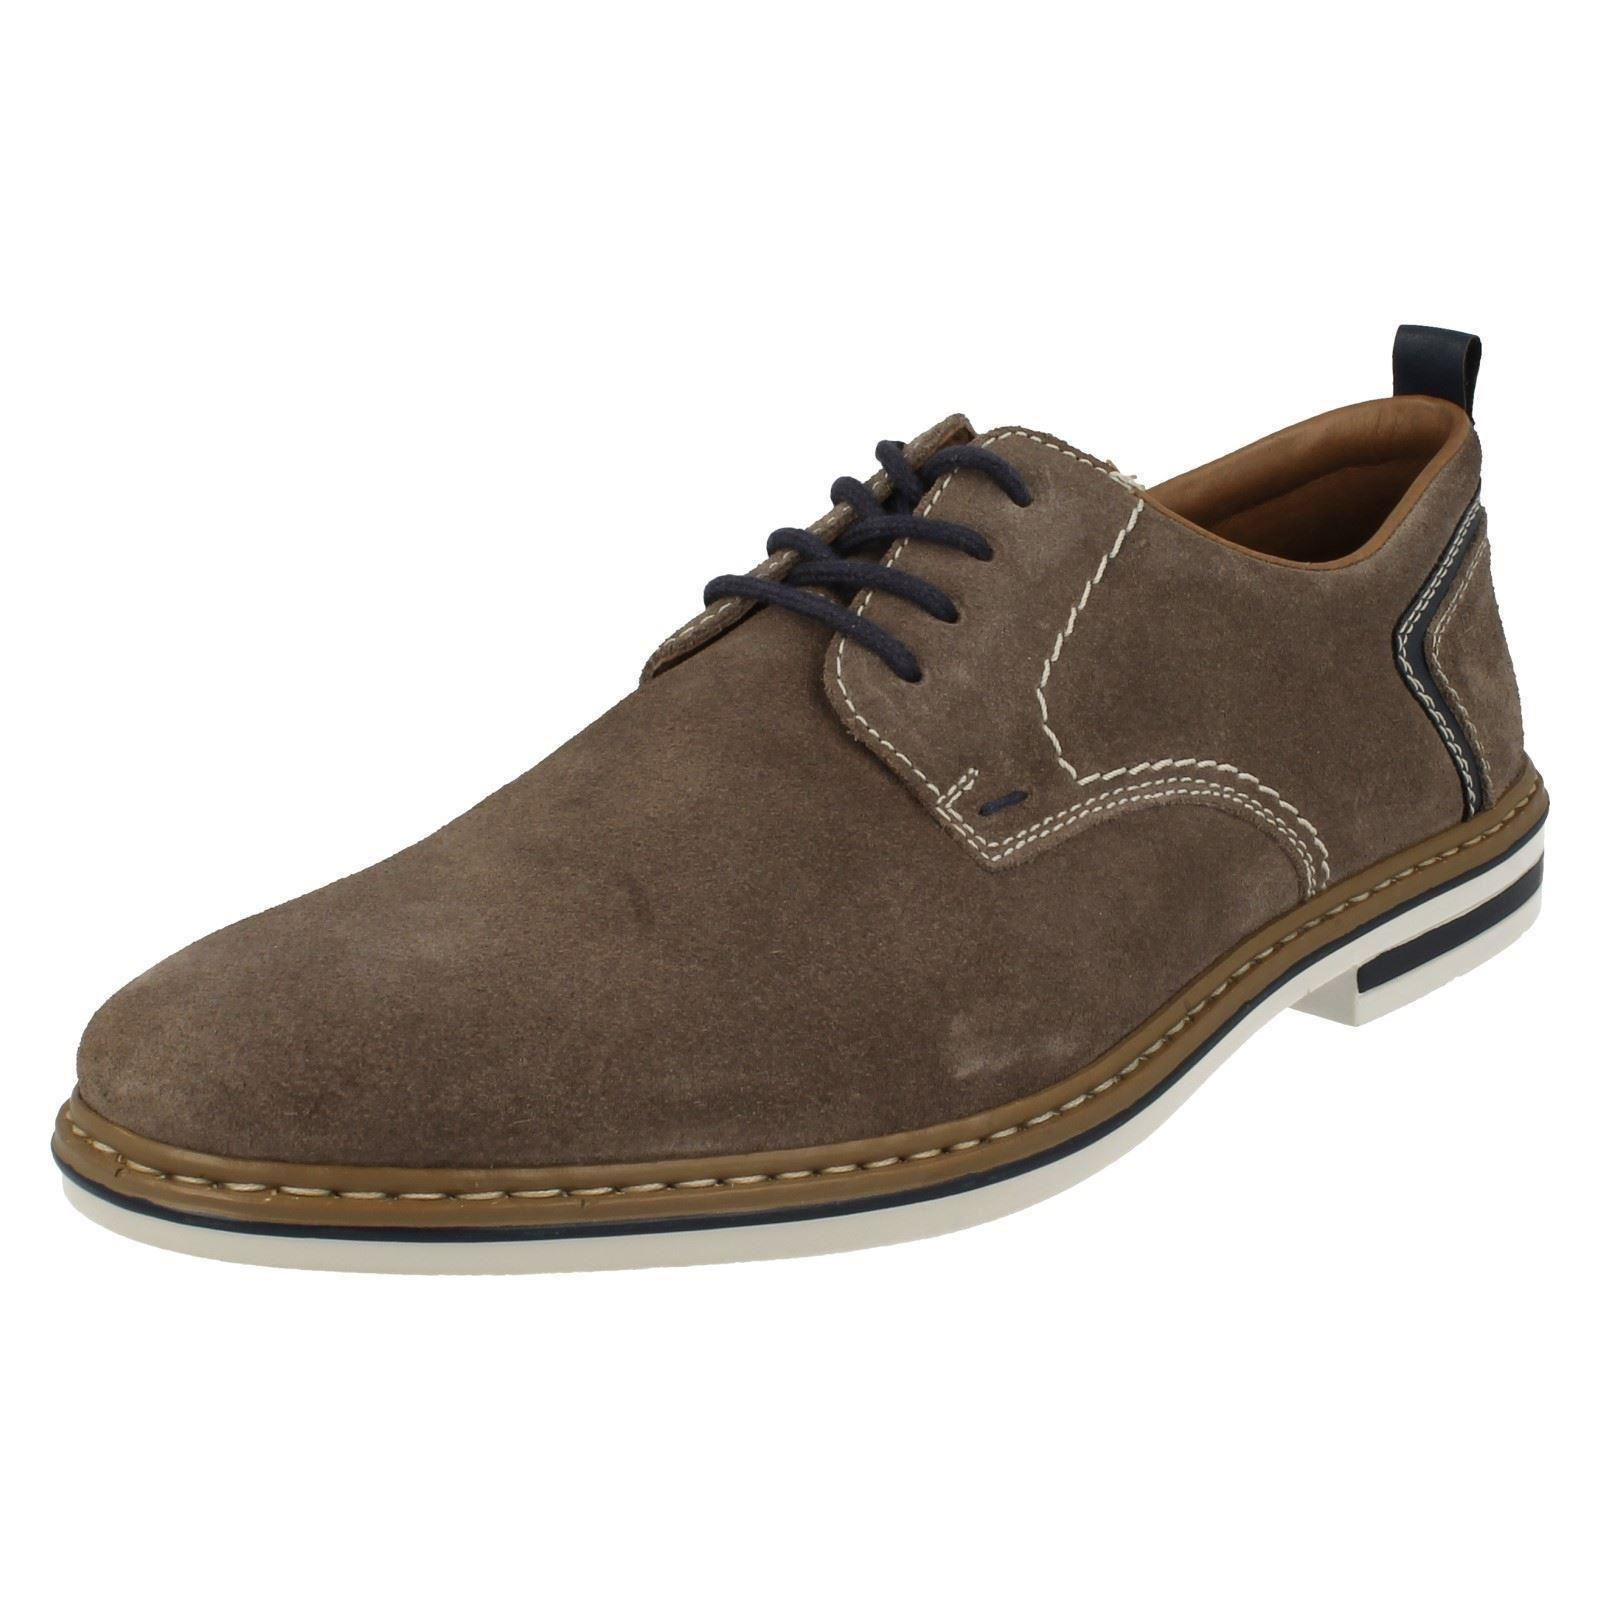 The Uomo Rieker Casual Schuhes The  Style - B1421 937c9b